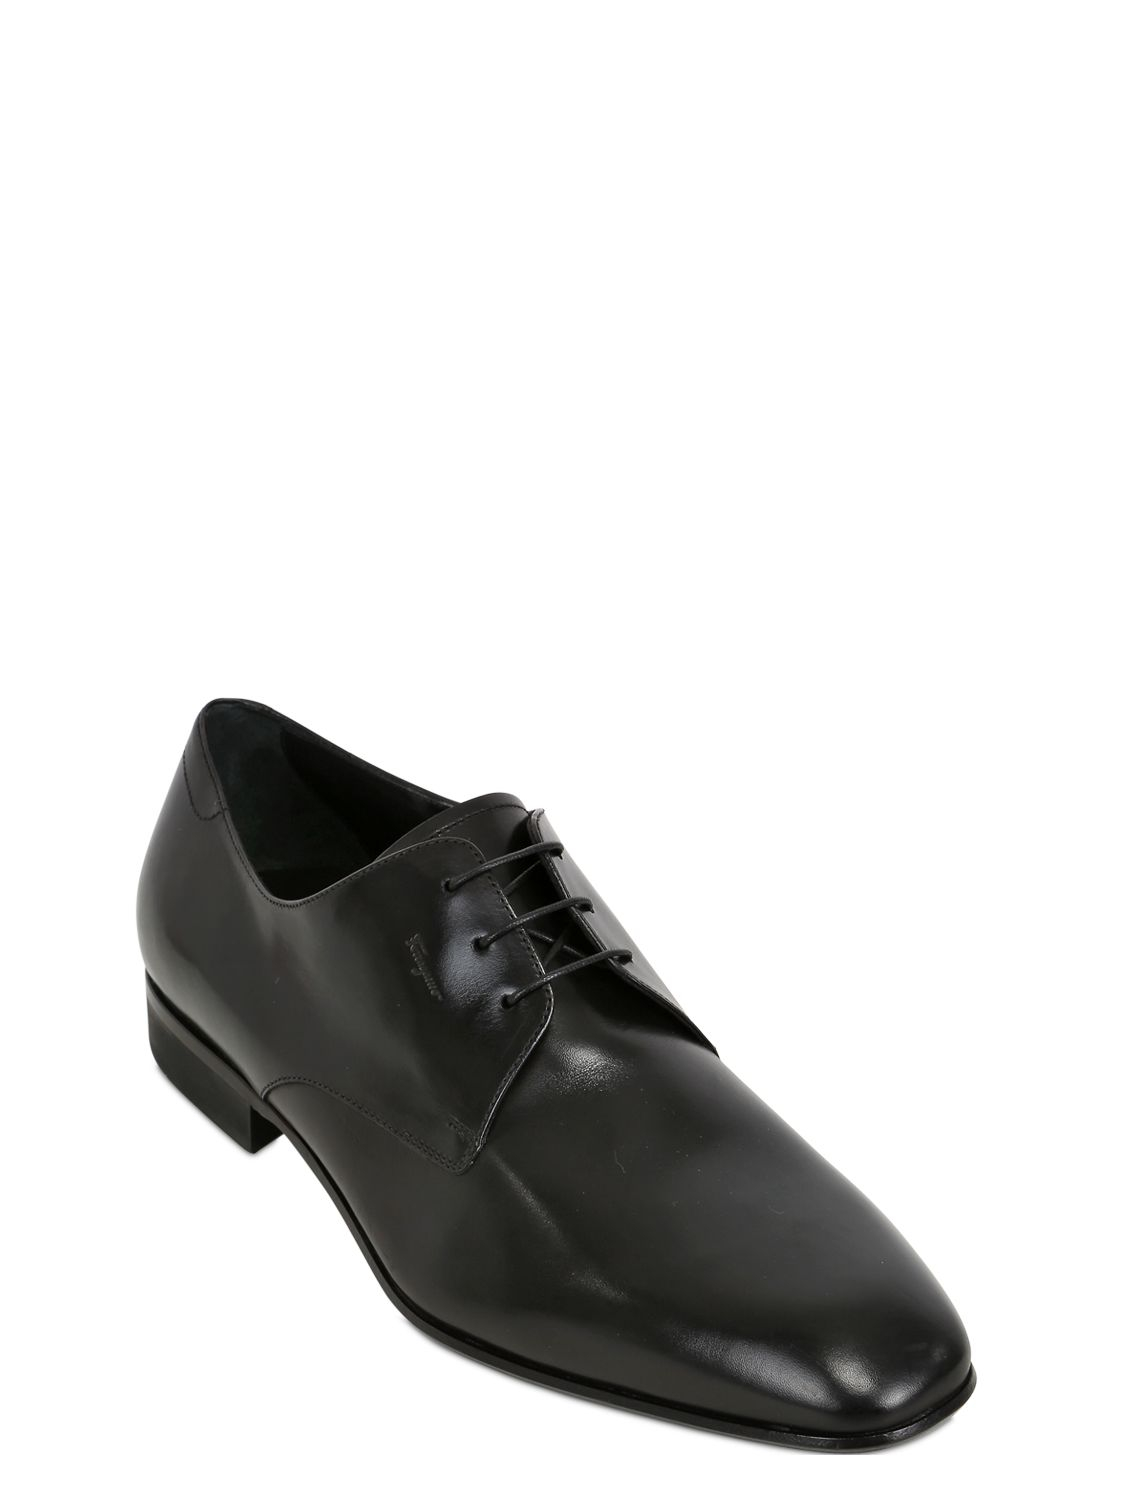 Ferragamo Palagio Leather Derby Shoes